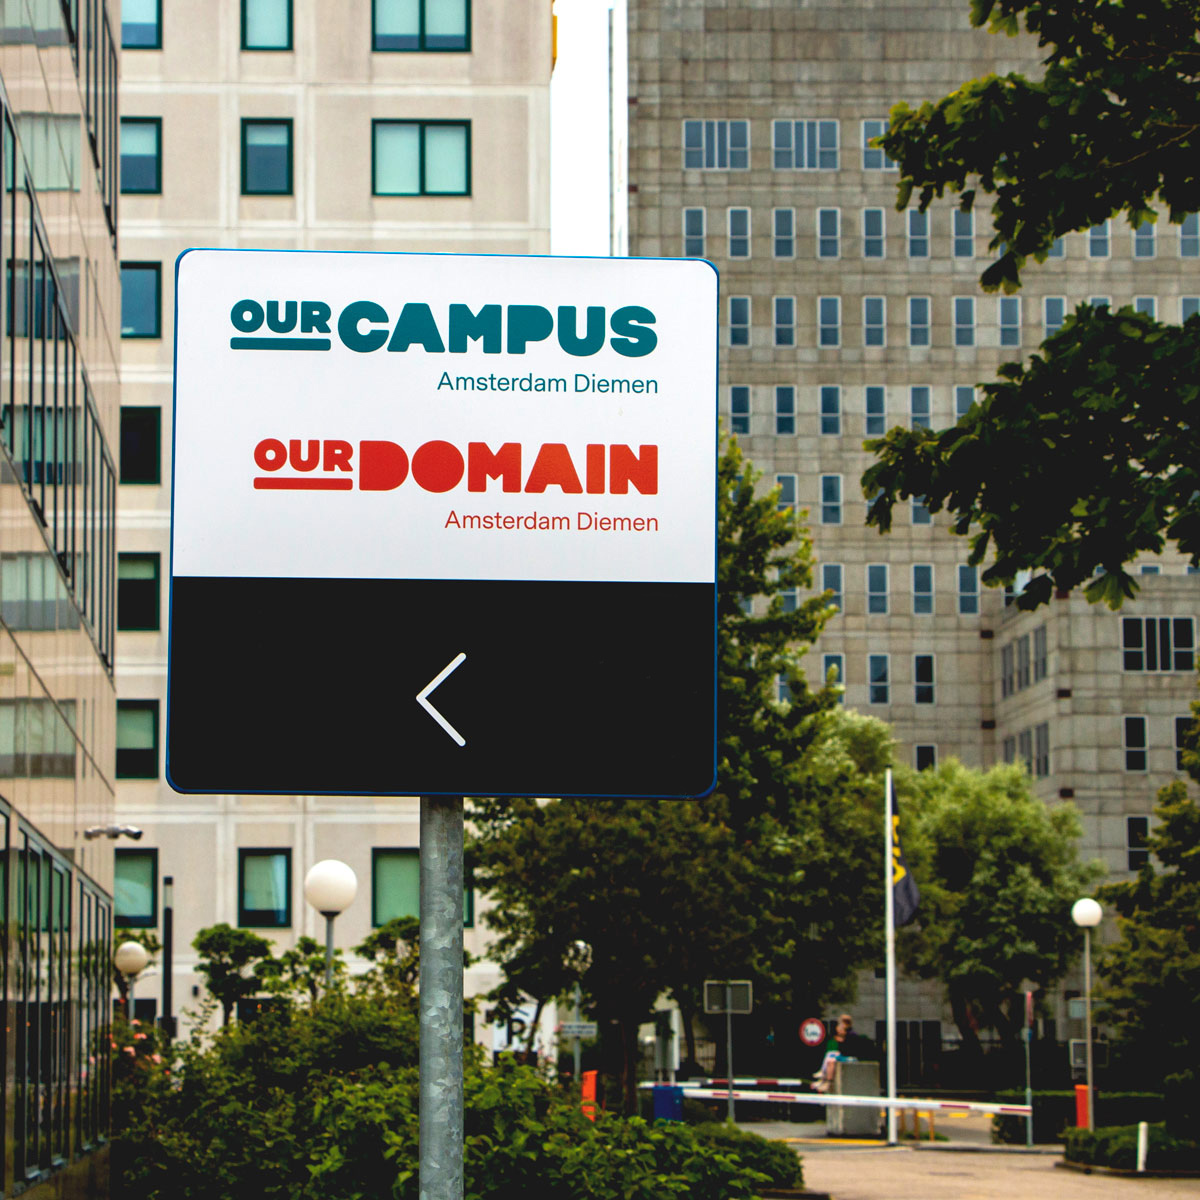 ourcampus ourdomain external street signage